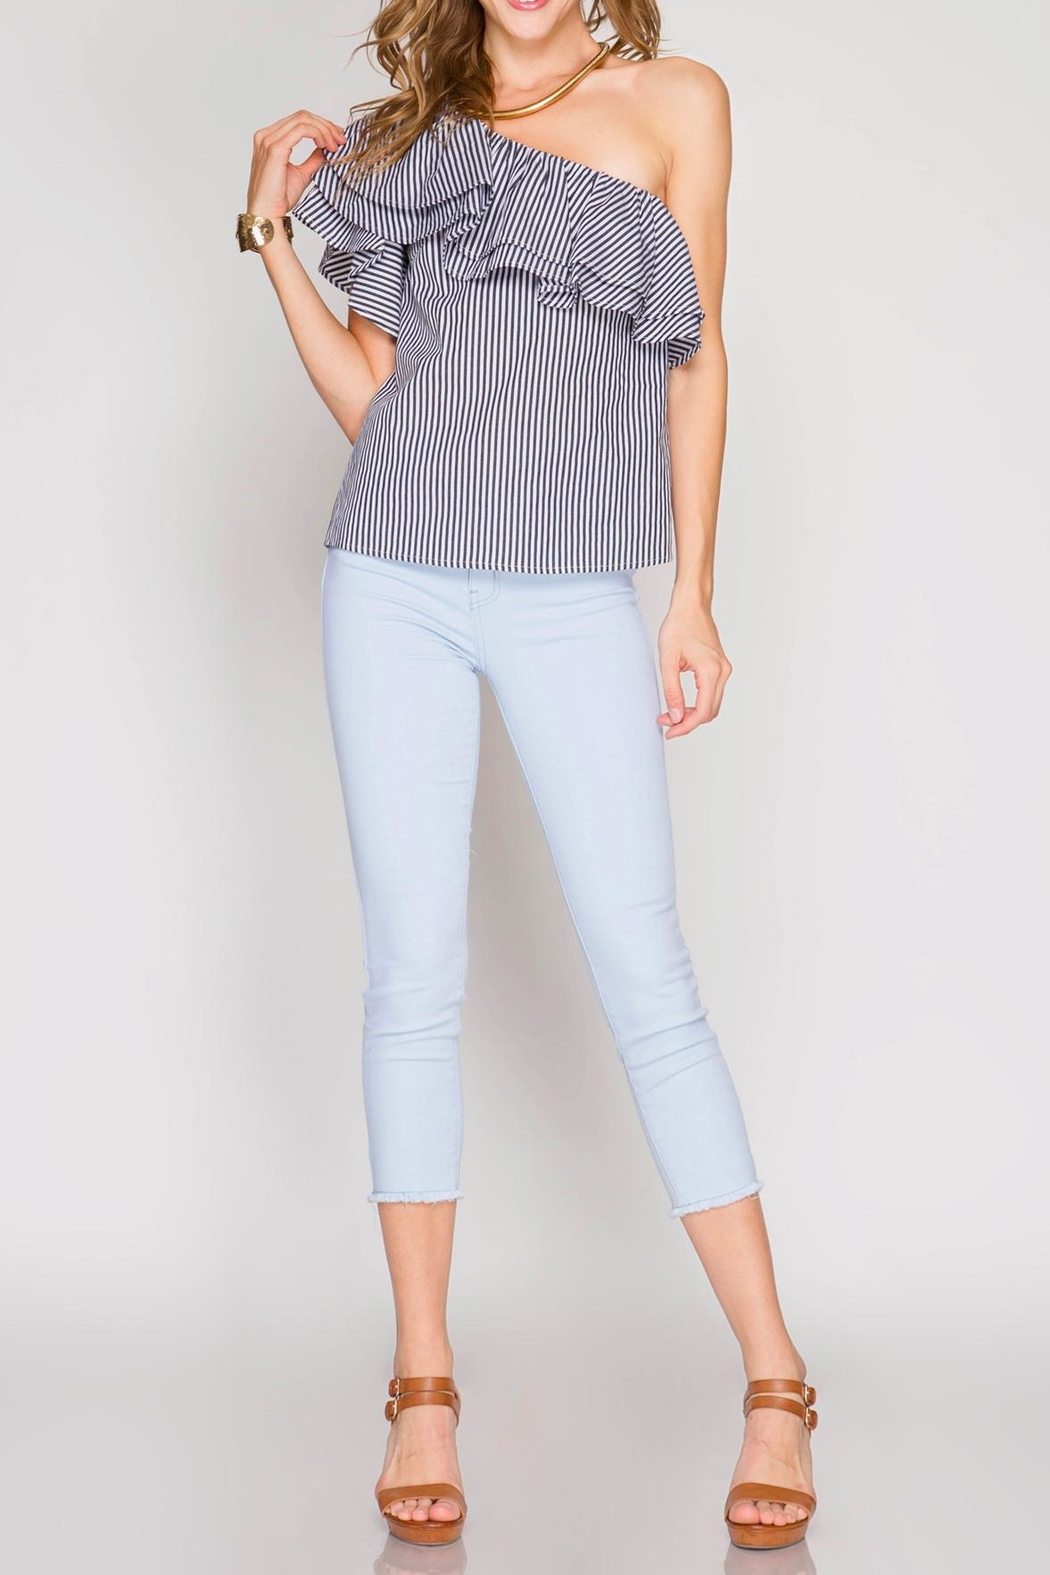 She + Sky One Shoulder Ruffle Top - Main Image